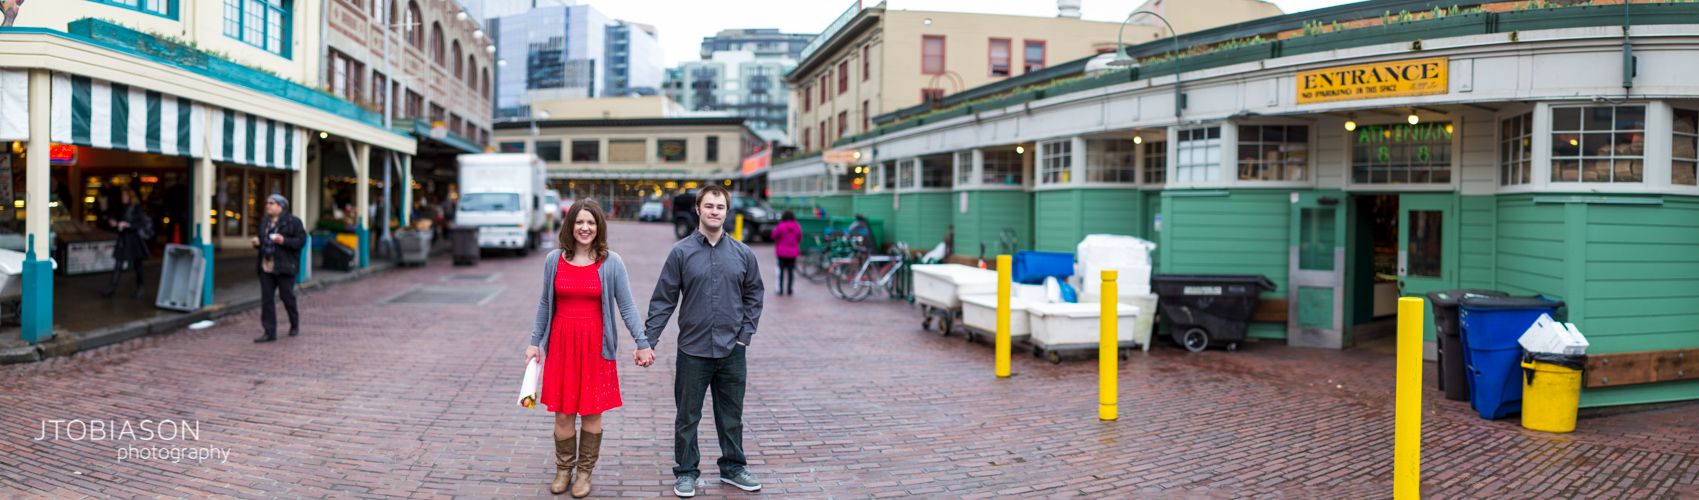 engagement photos pike place brenizer photo